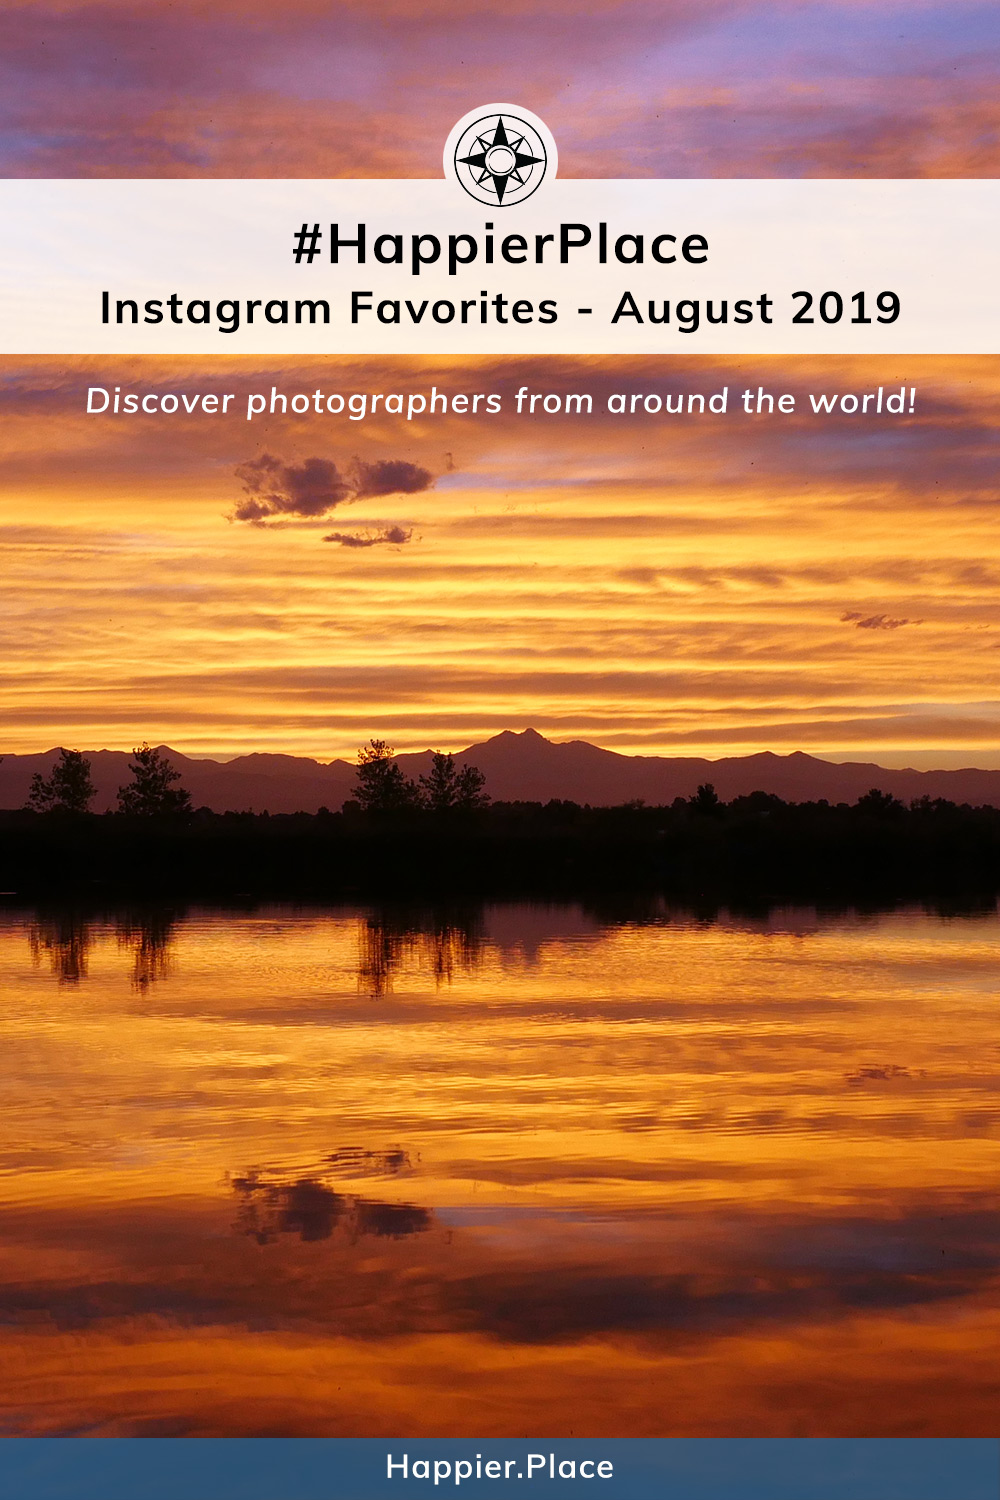 Instagram #HappierPlace August 2019 Favorites - represented by sunset reflection in St. Vrain State Park, Colorado, with Rocky Mountains backdrop.  #travel #photography #naturephotography #nature #outdoors #photographer #Instagram